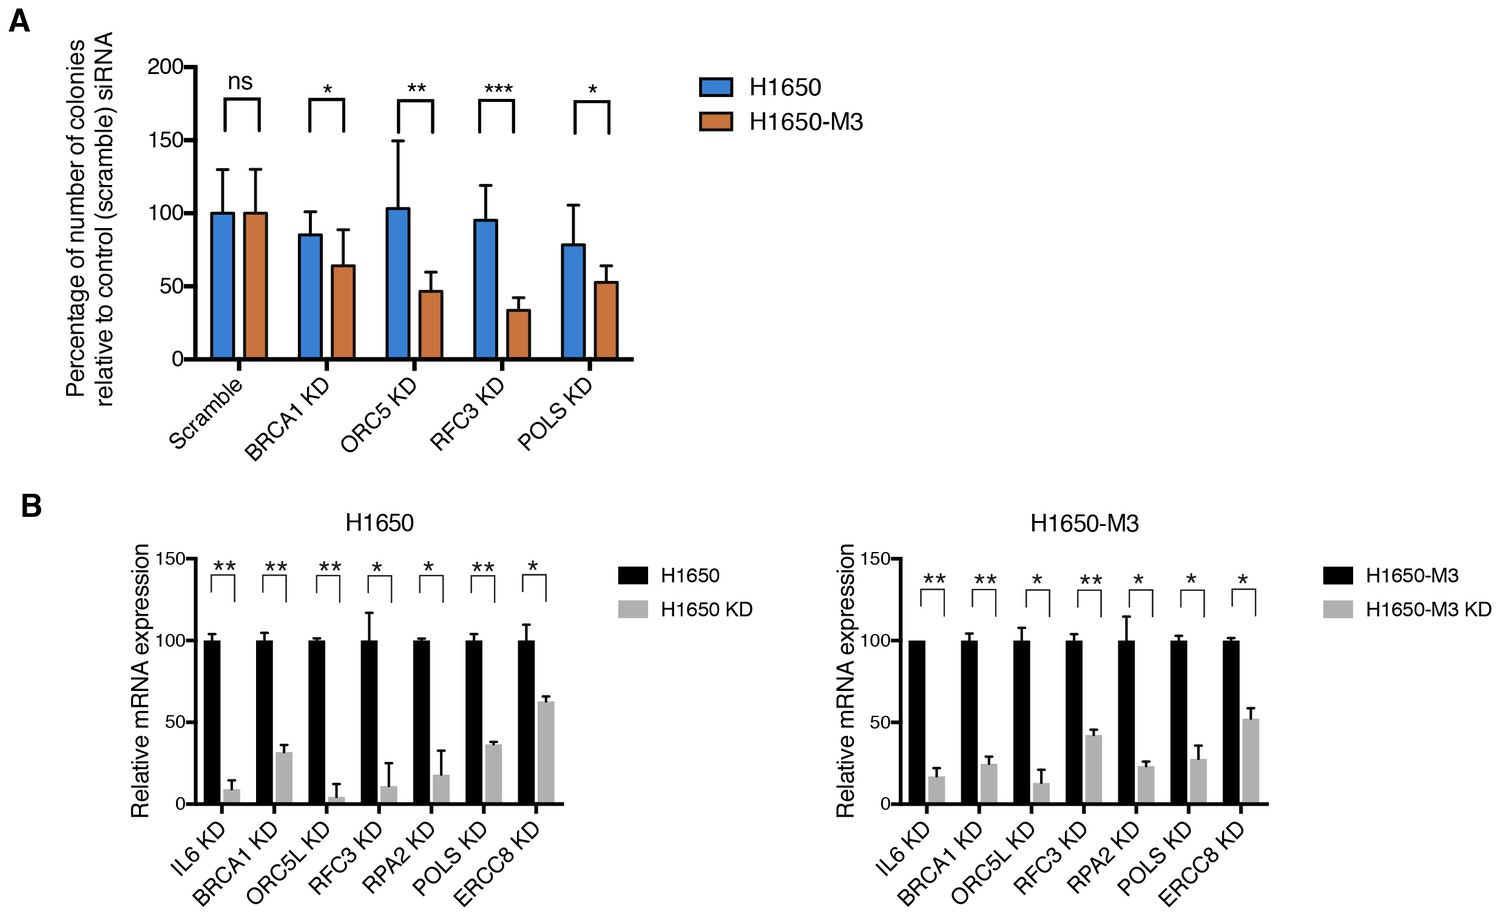 Tgf Reduces Dna Ds Break Repair Mechanisms To Heighten Genetic Sp Reguler Axis Hitz Validation Of Shrna Screen Hits In H1650 And M3 Cells Using The Clonogenic Assay Technique